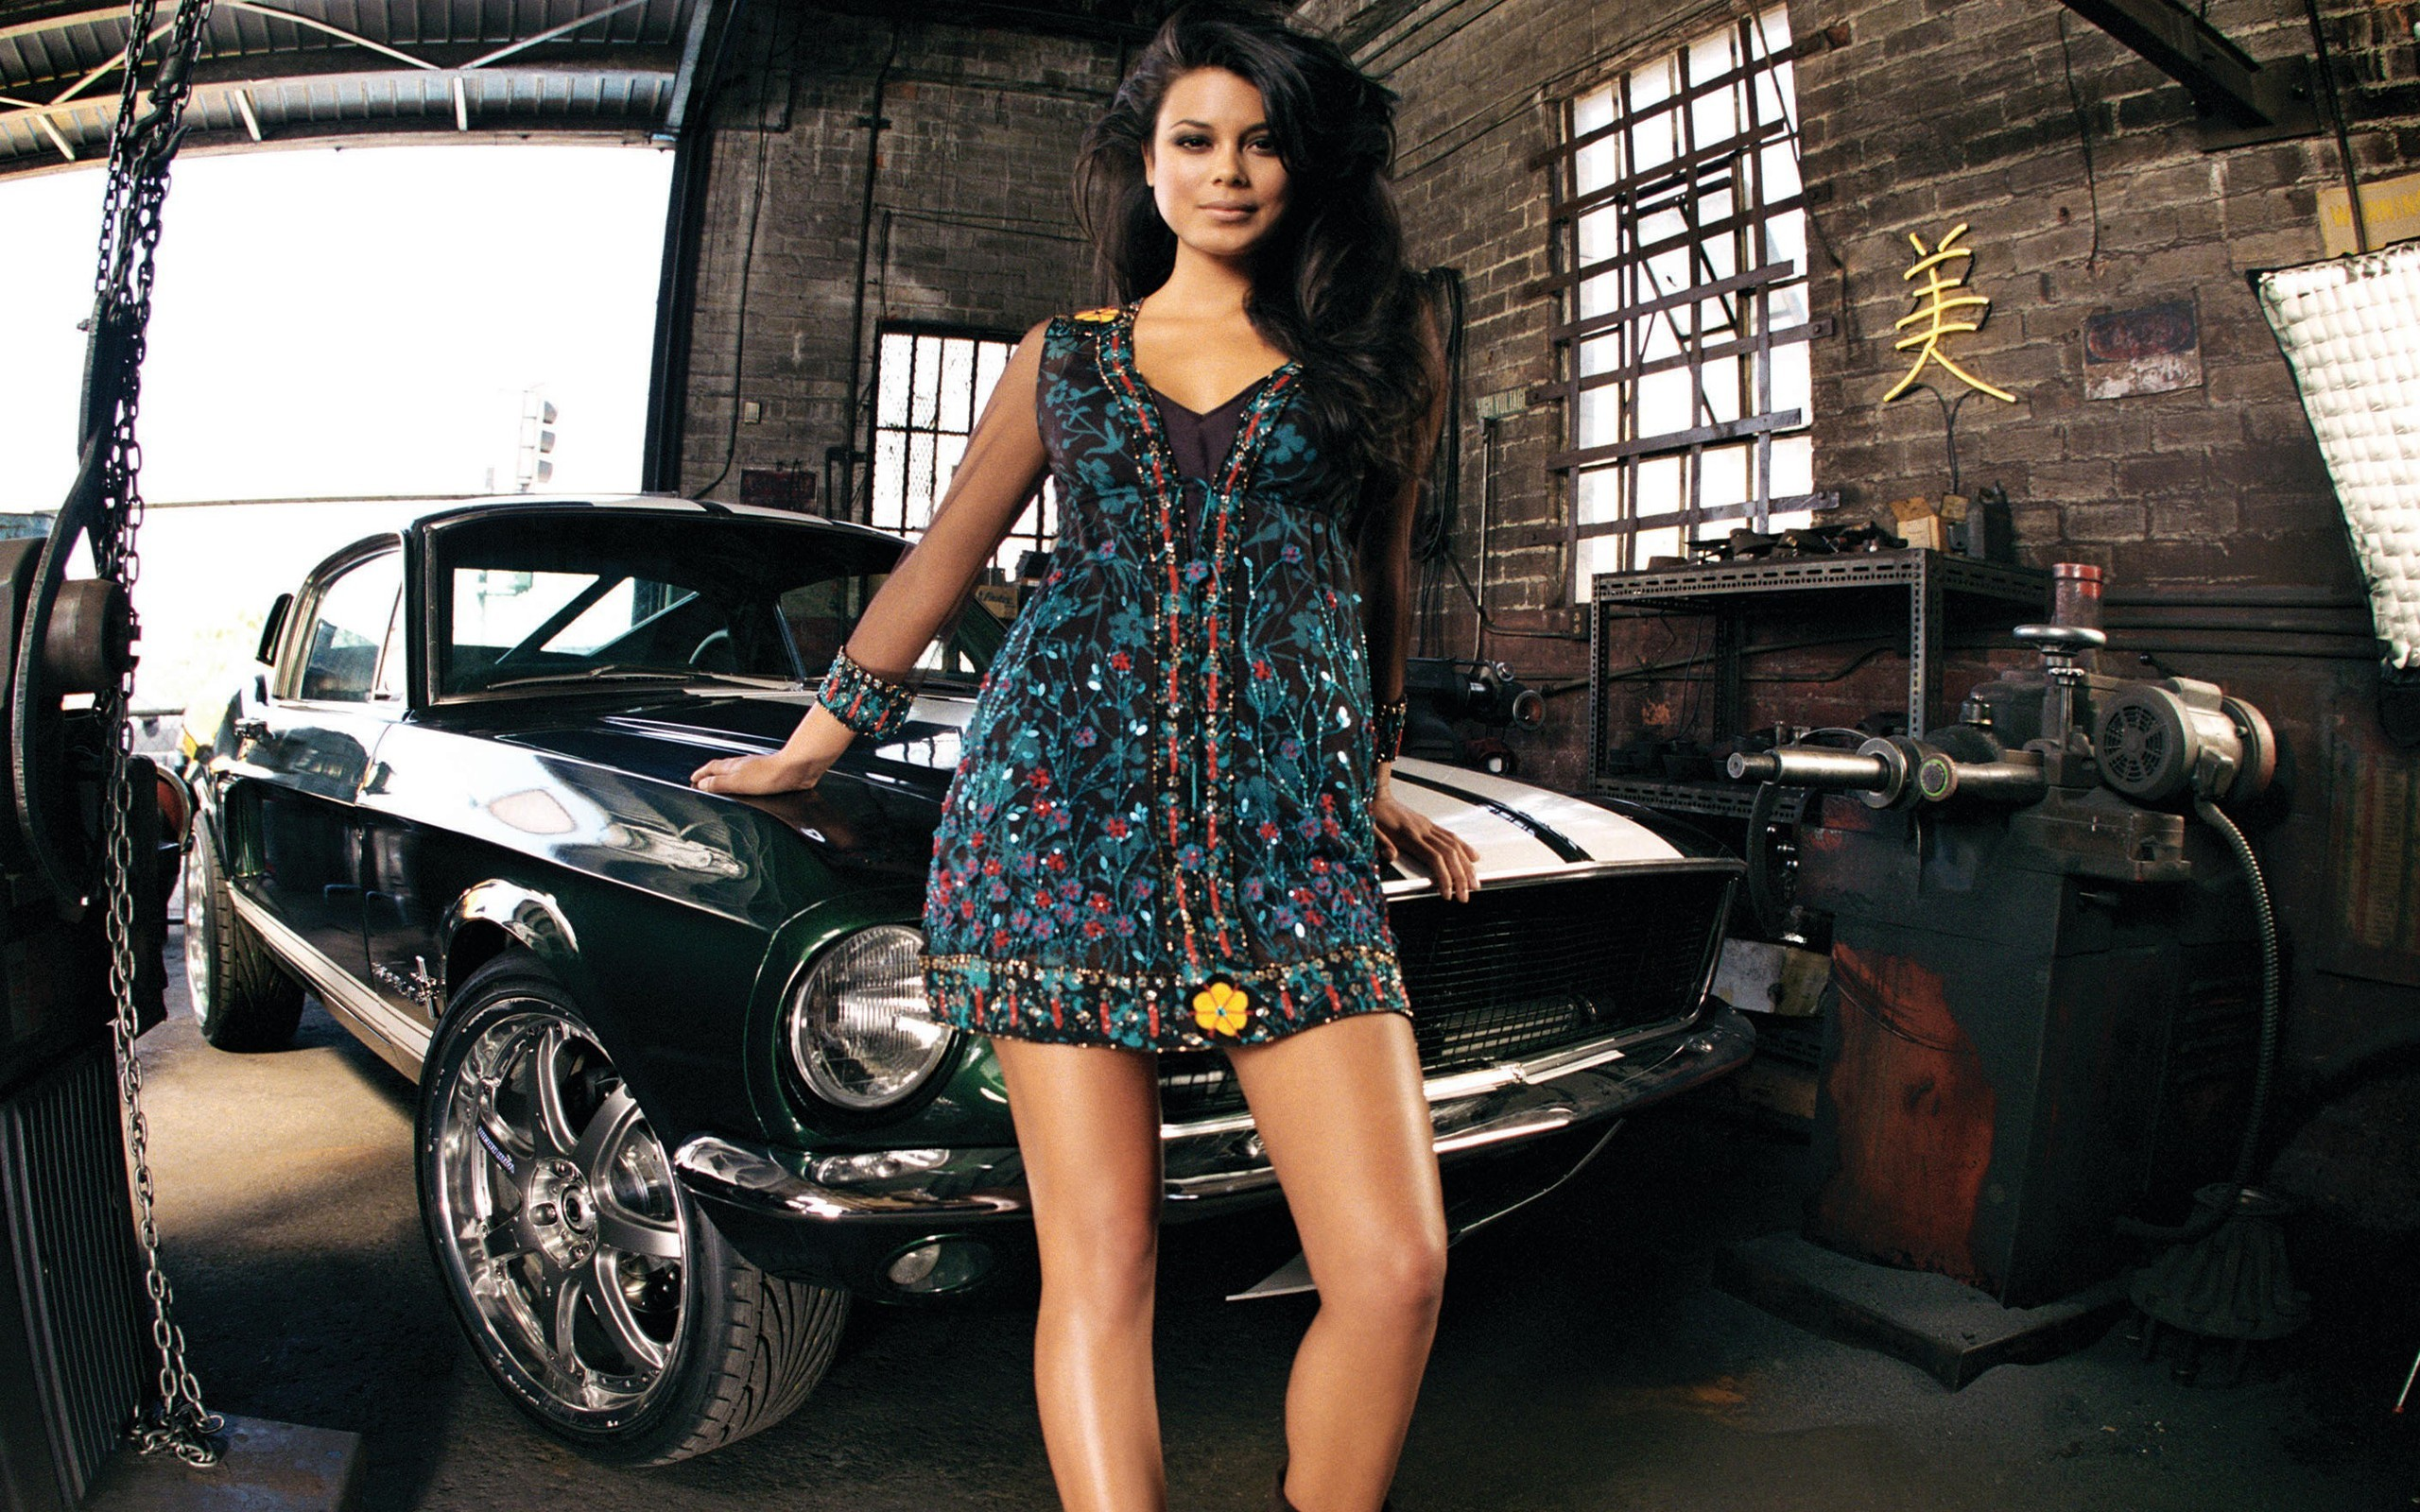 woman cars vehicles nathalie kelley